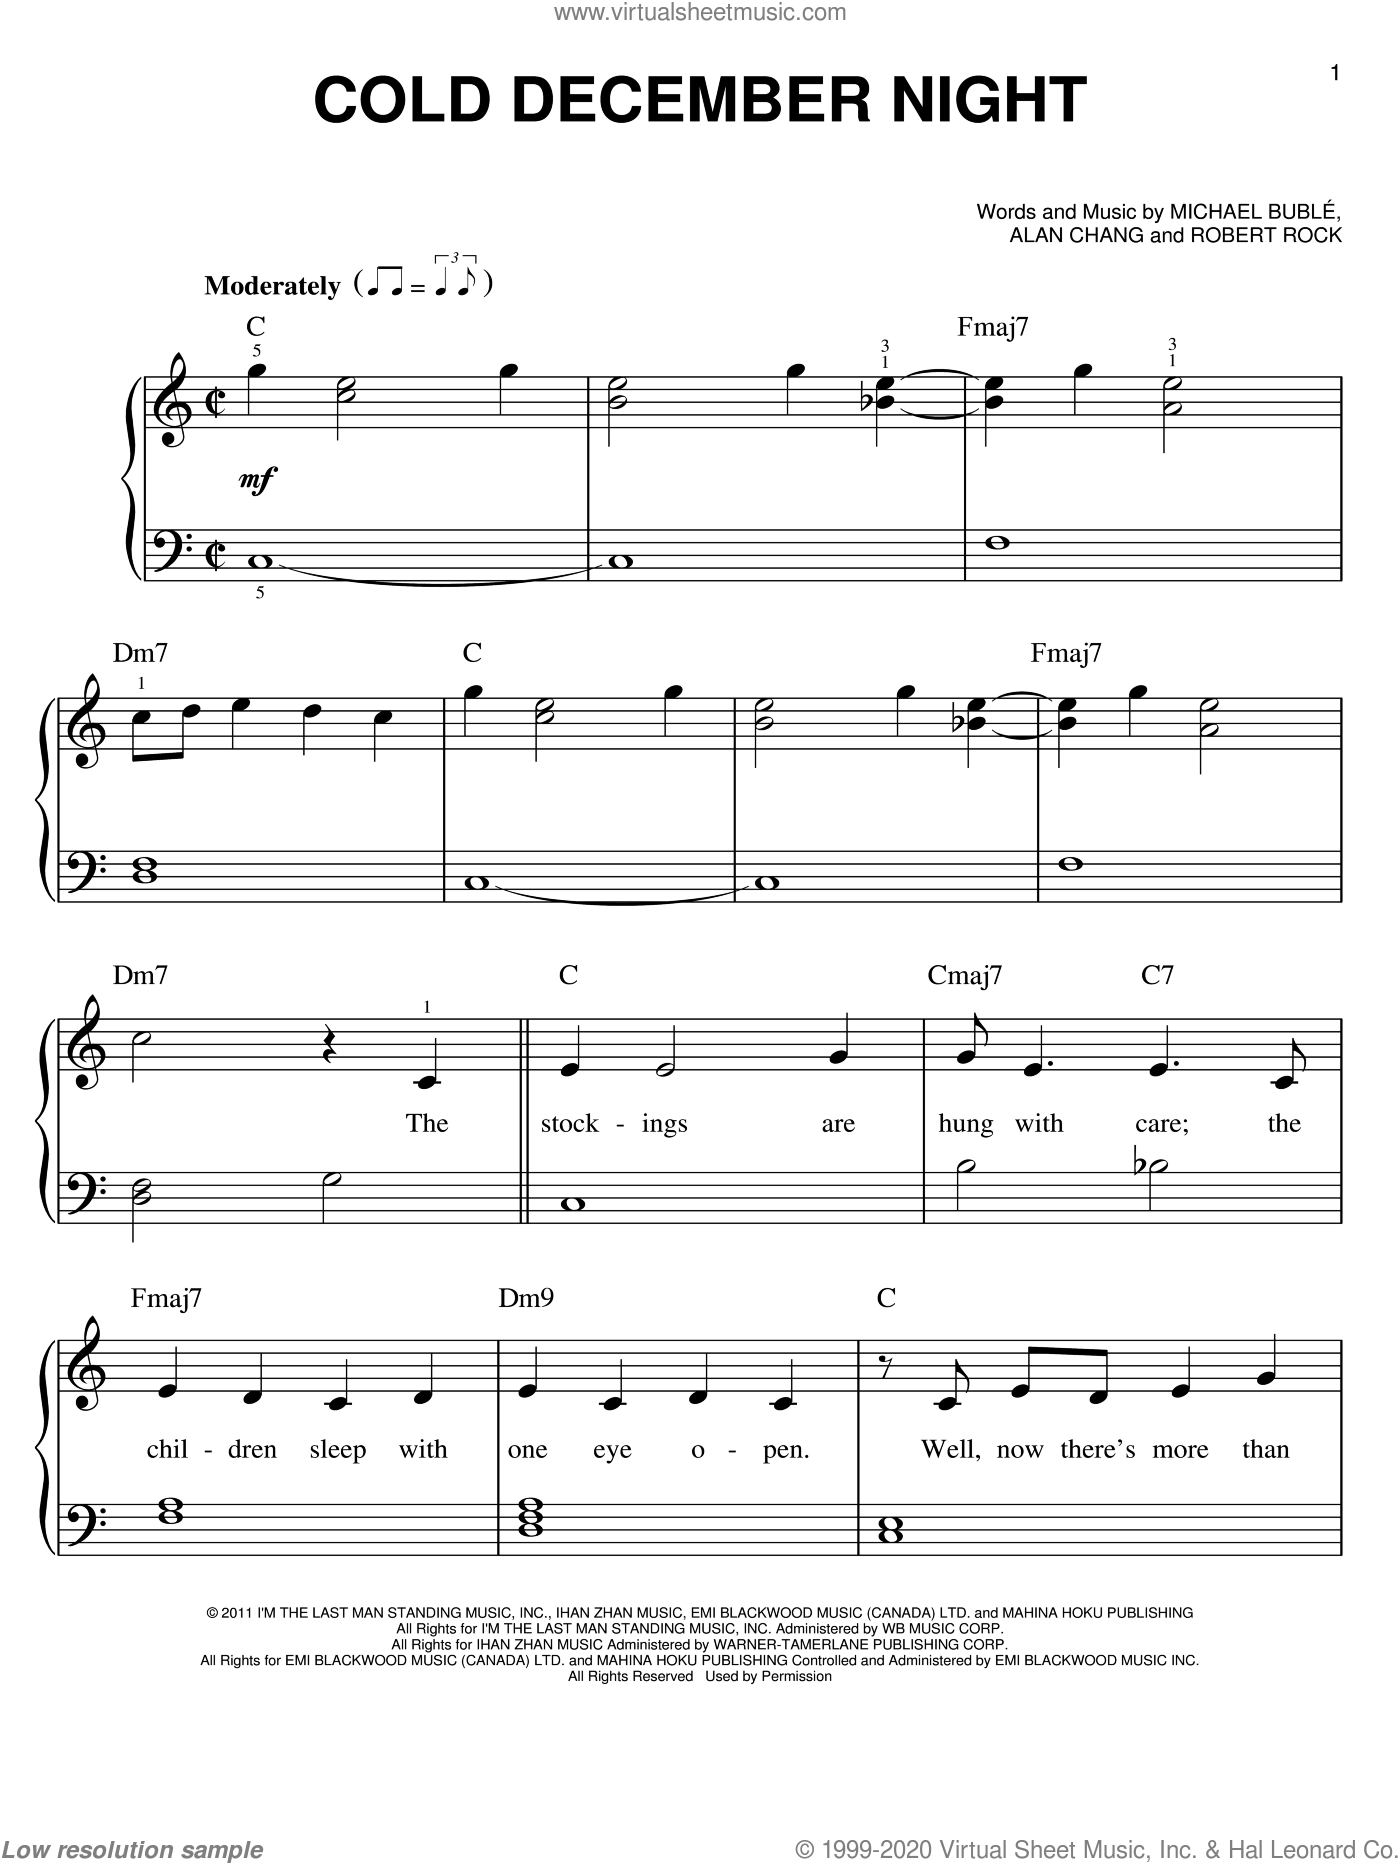 Cold December Night sheet music for piano solo (chords) by Robert Rock